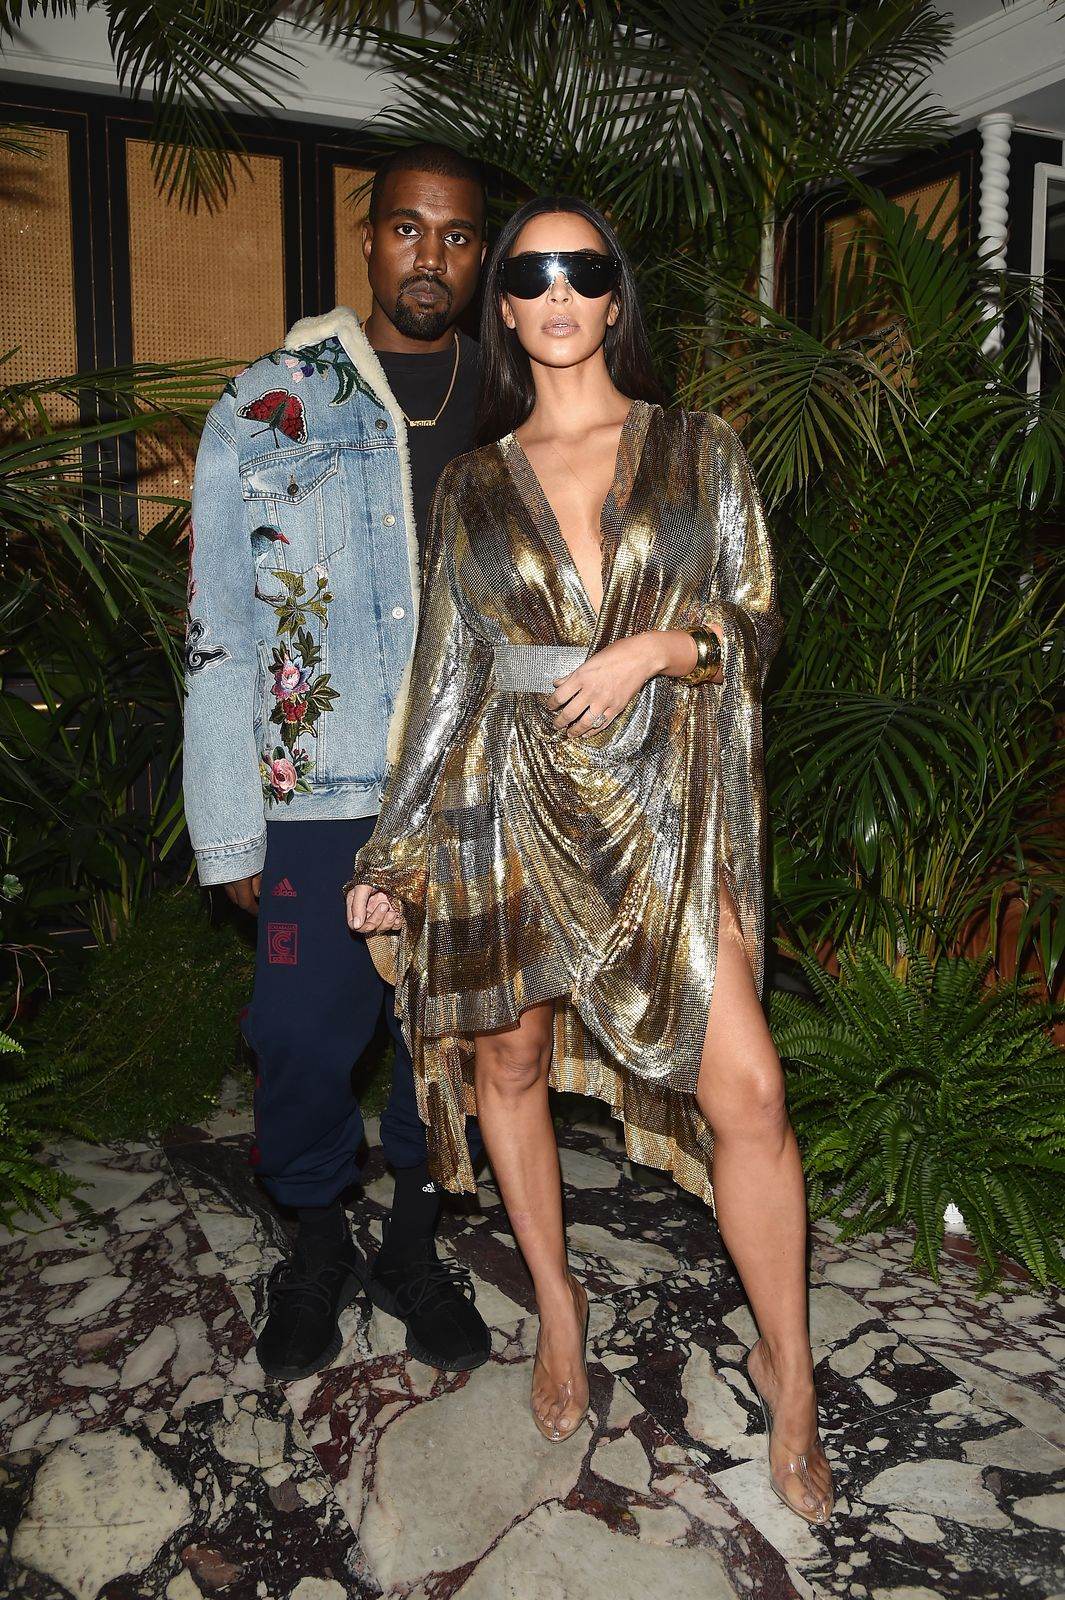 Kanye West & Kim Kardashian at the Balmain aftershow party during the Paris Fashion Week on Sept. 29, 2016 France | Photo: Getty Images